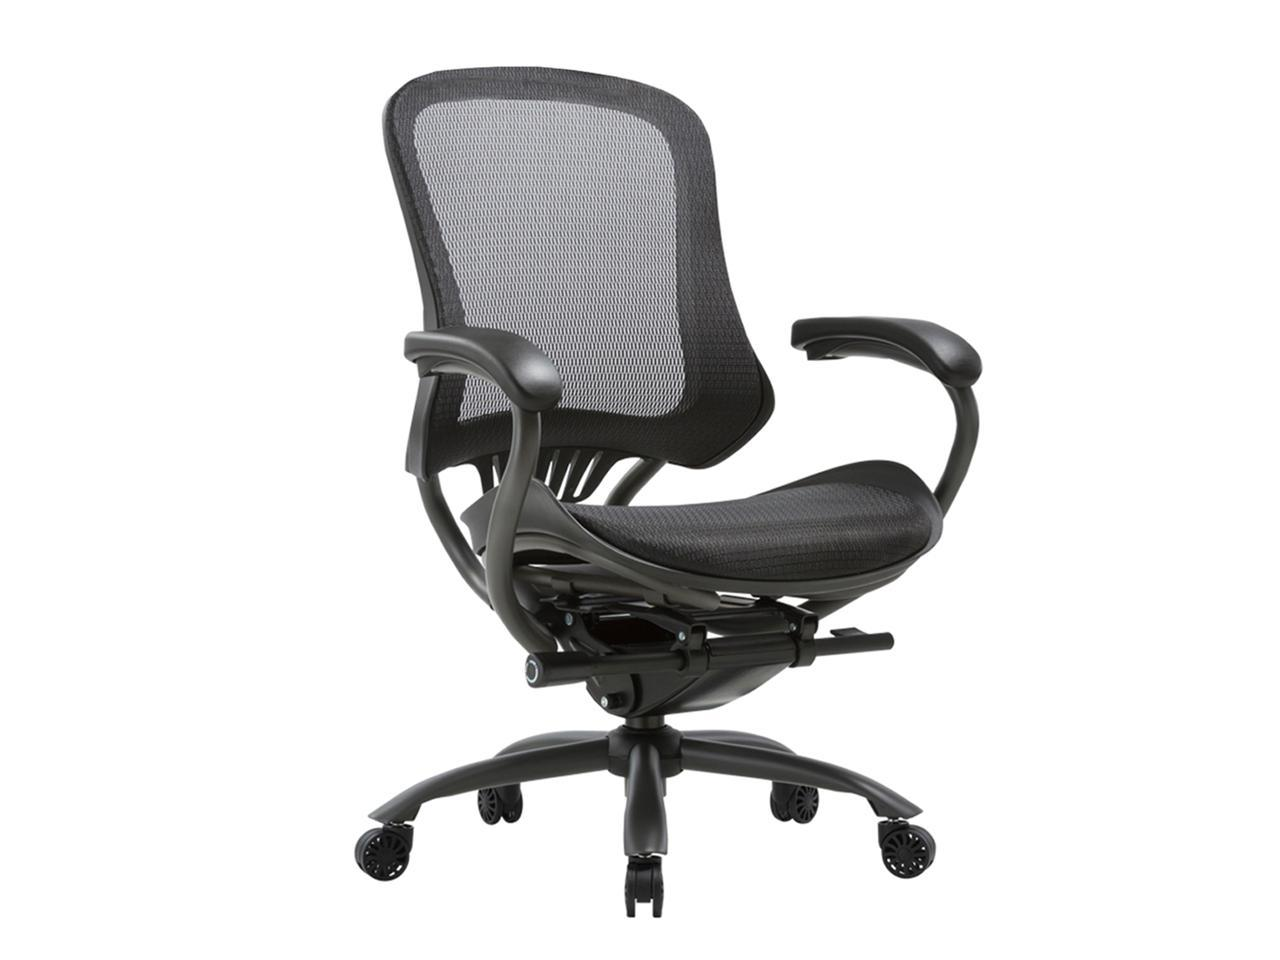 Ergonomic Office Dask Chair High Back Executive Home Office Desk Chair with Arms Adjustable Height Back Lumbar Support Mesh Heavy Duty